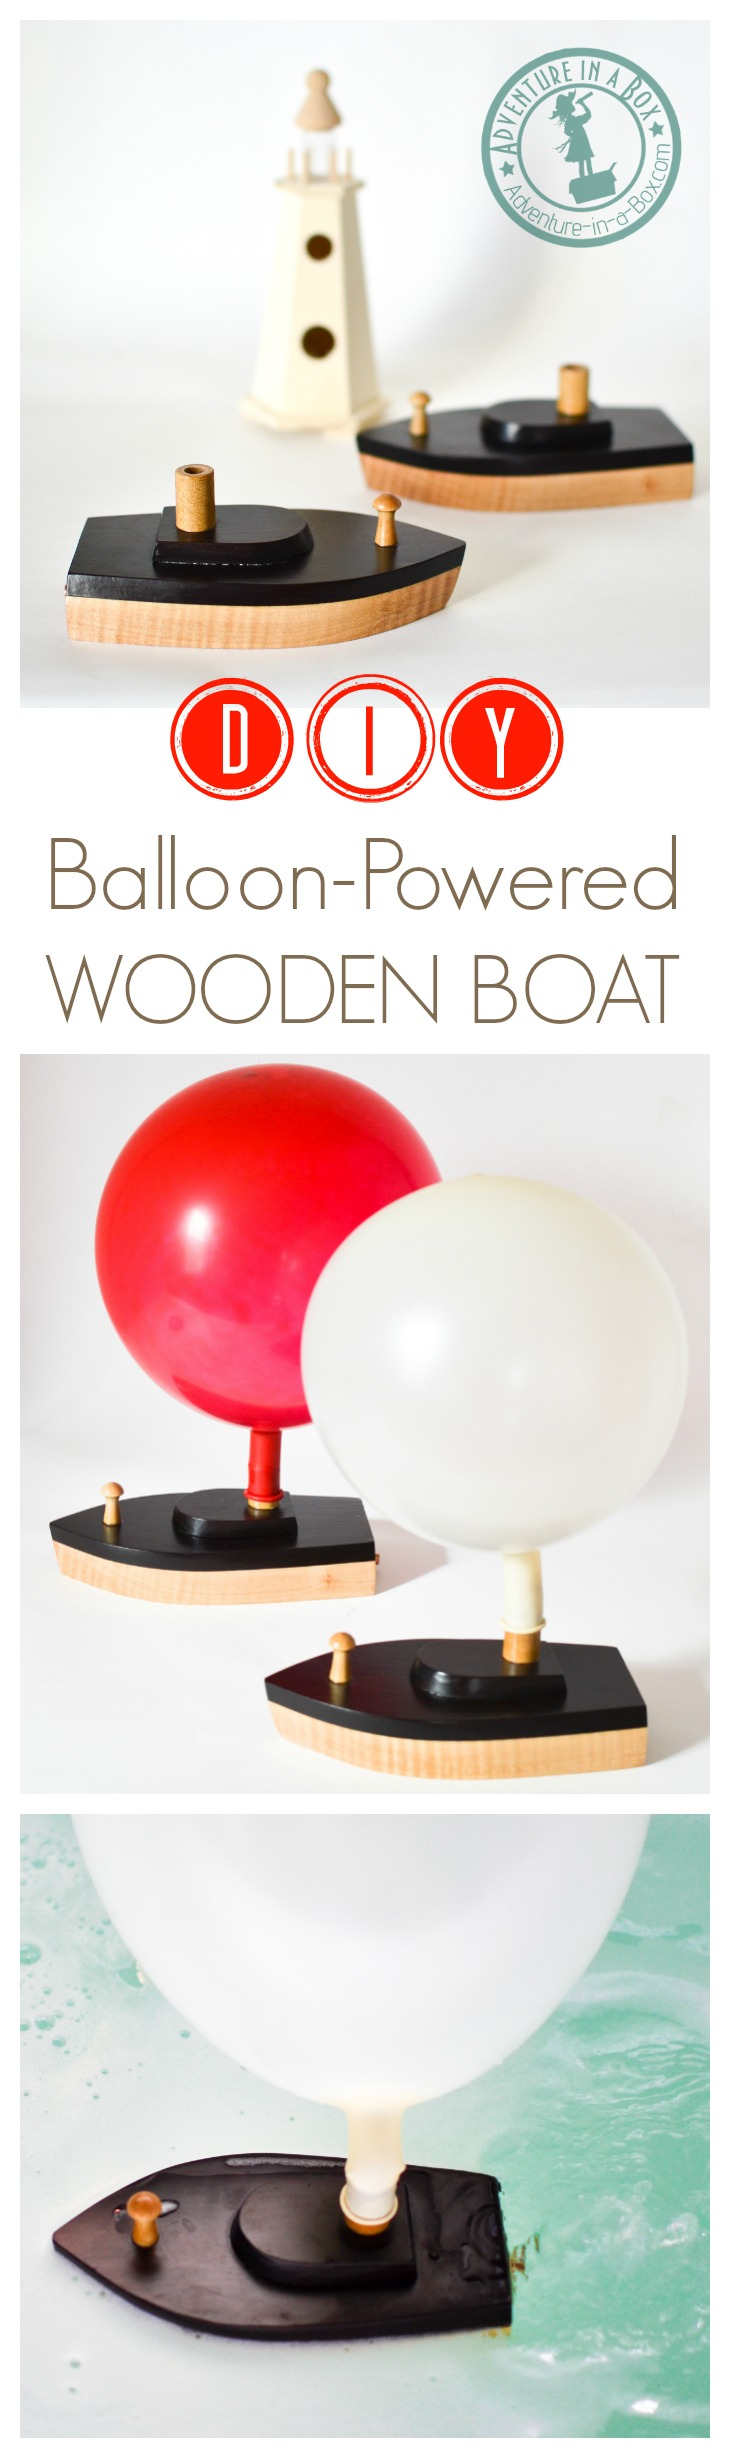 Wooden toy boats are fun to make! Add to this a little experiment to study the mechanics of movement, and you've got this - a DIY balloon-powered toy boat.